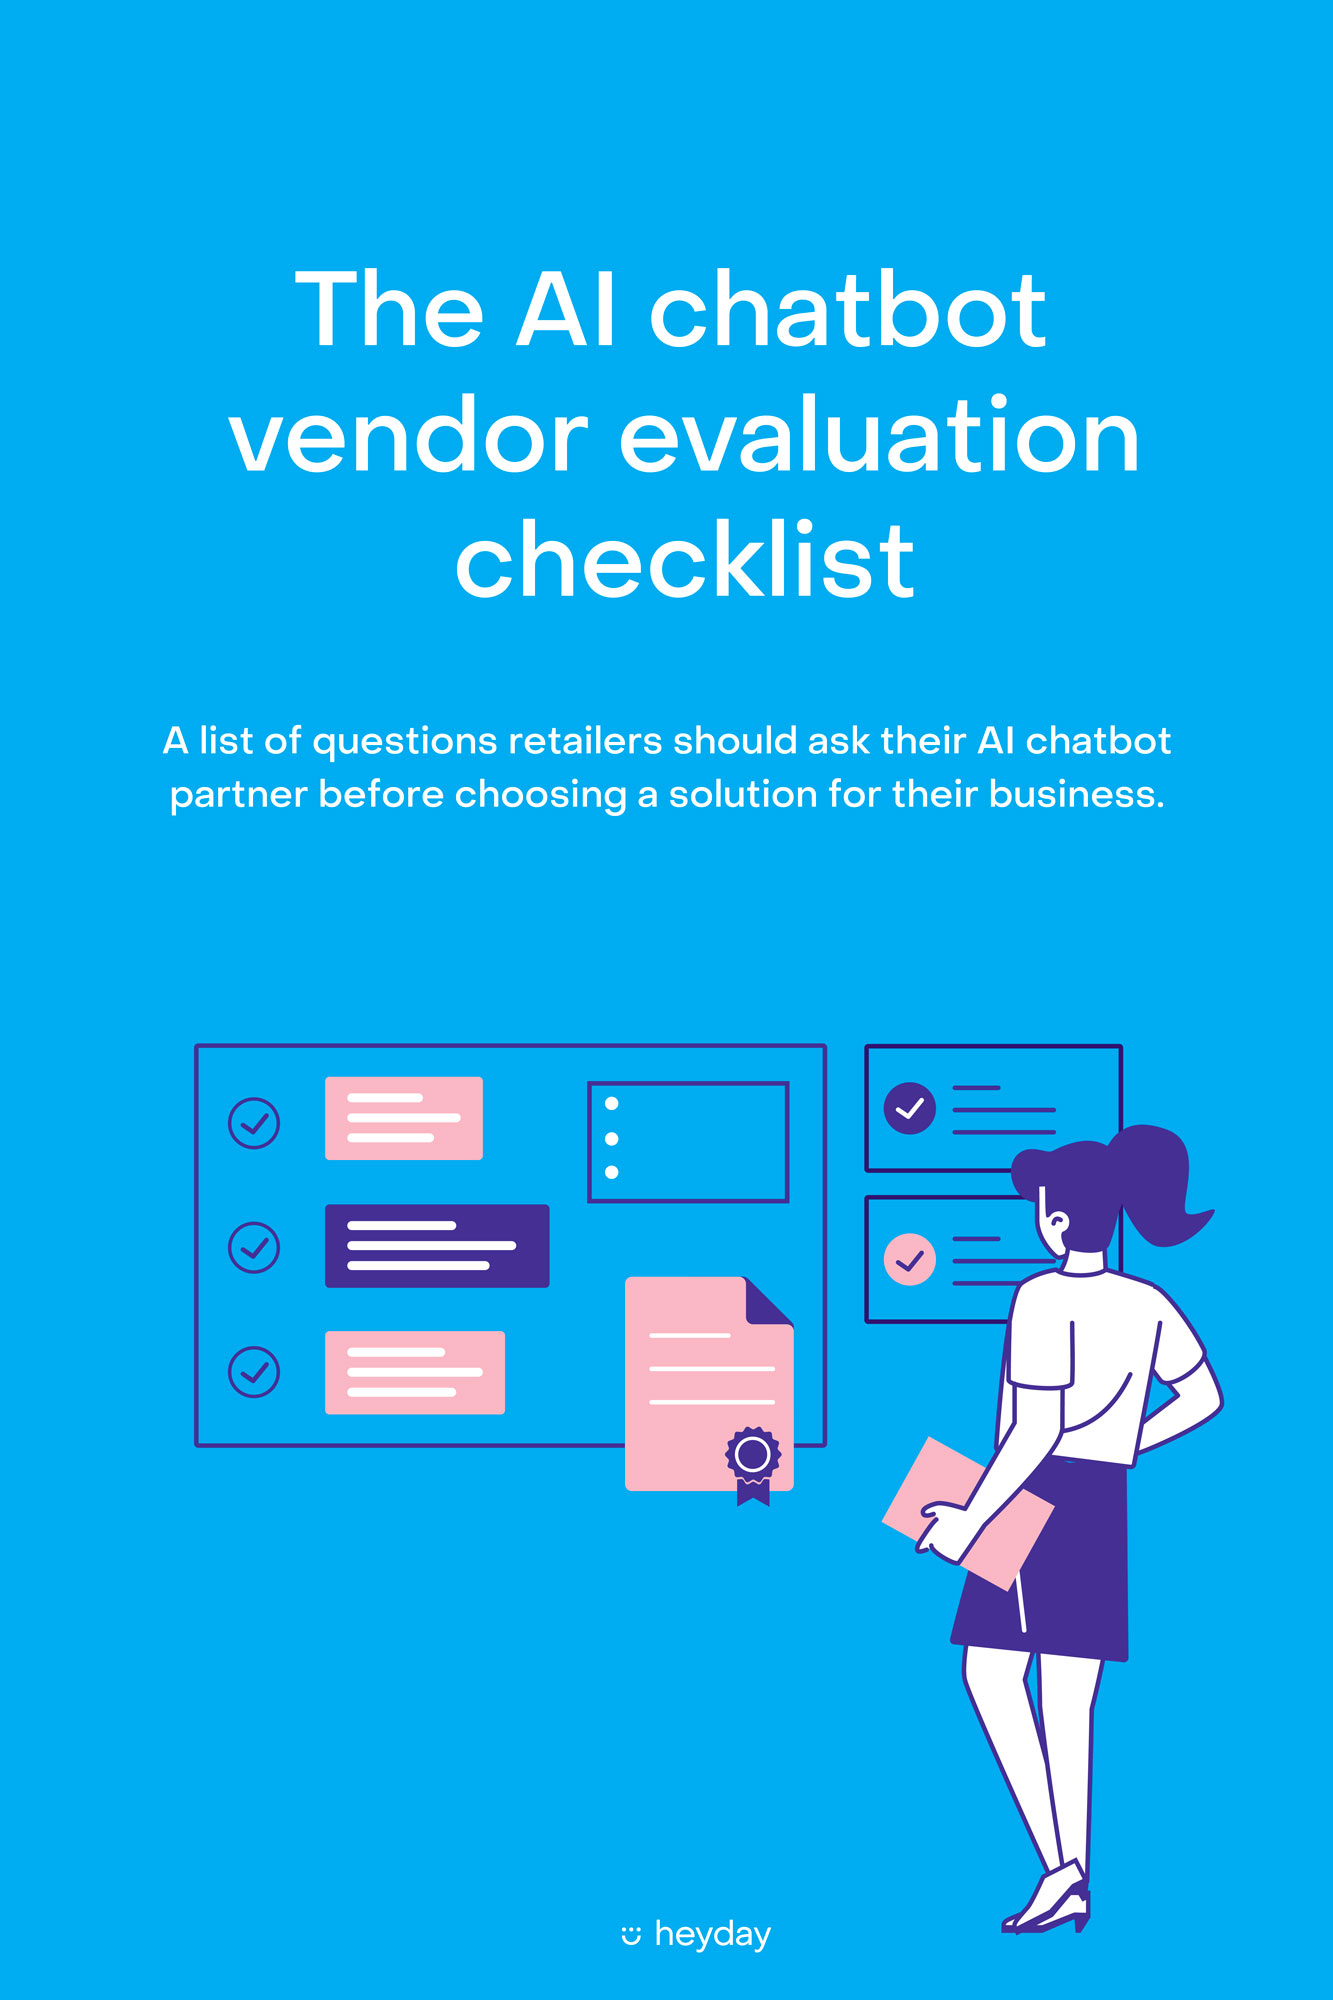 The AI chatbot vendor evaluation checklist